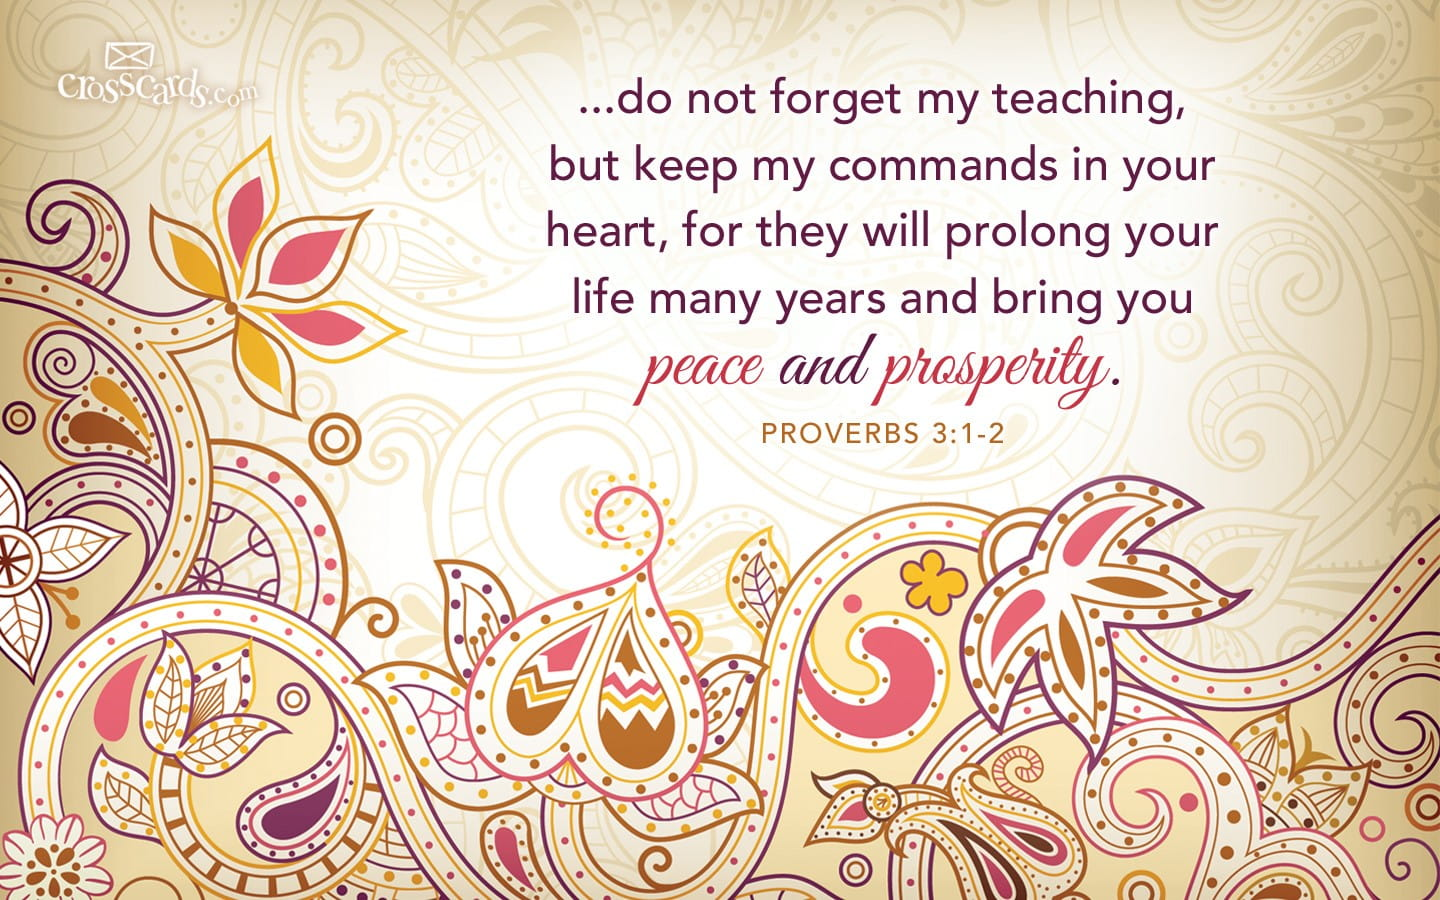 Thank You Wallpaper Animated Proverbs 3 1 2 Bible Verses And Scripture Wallpaper For